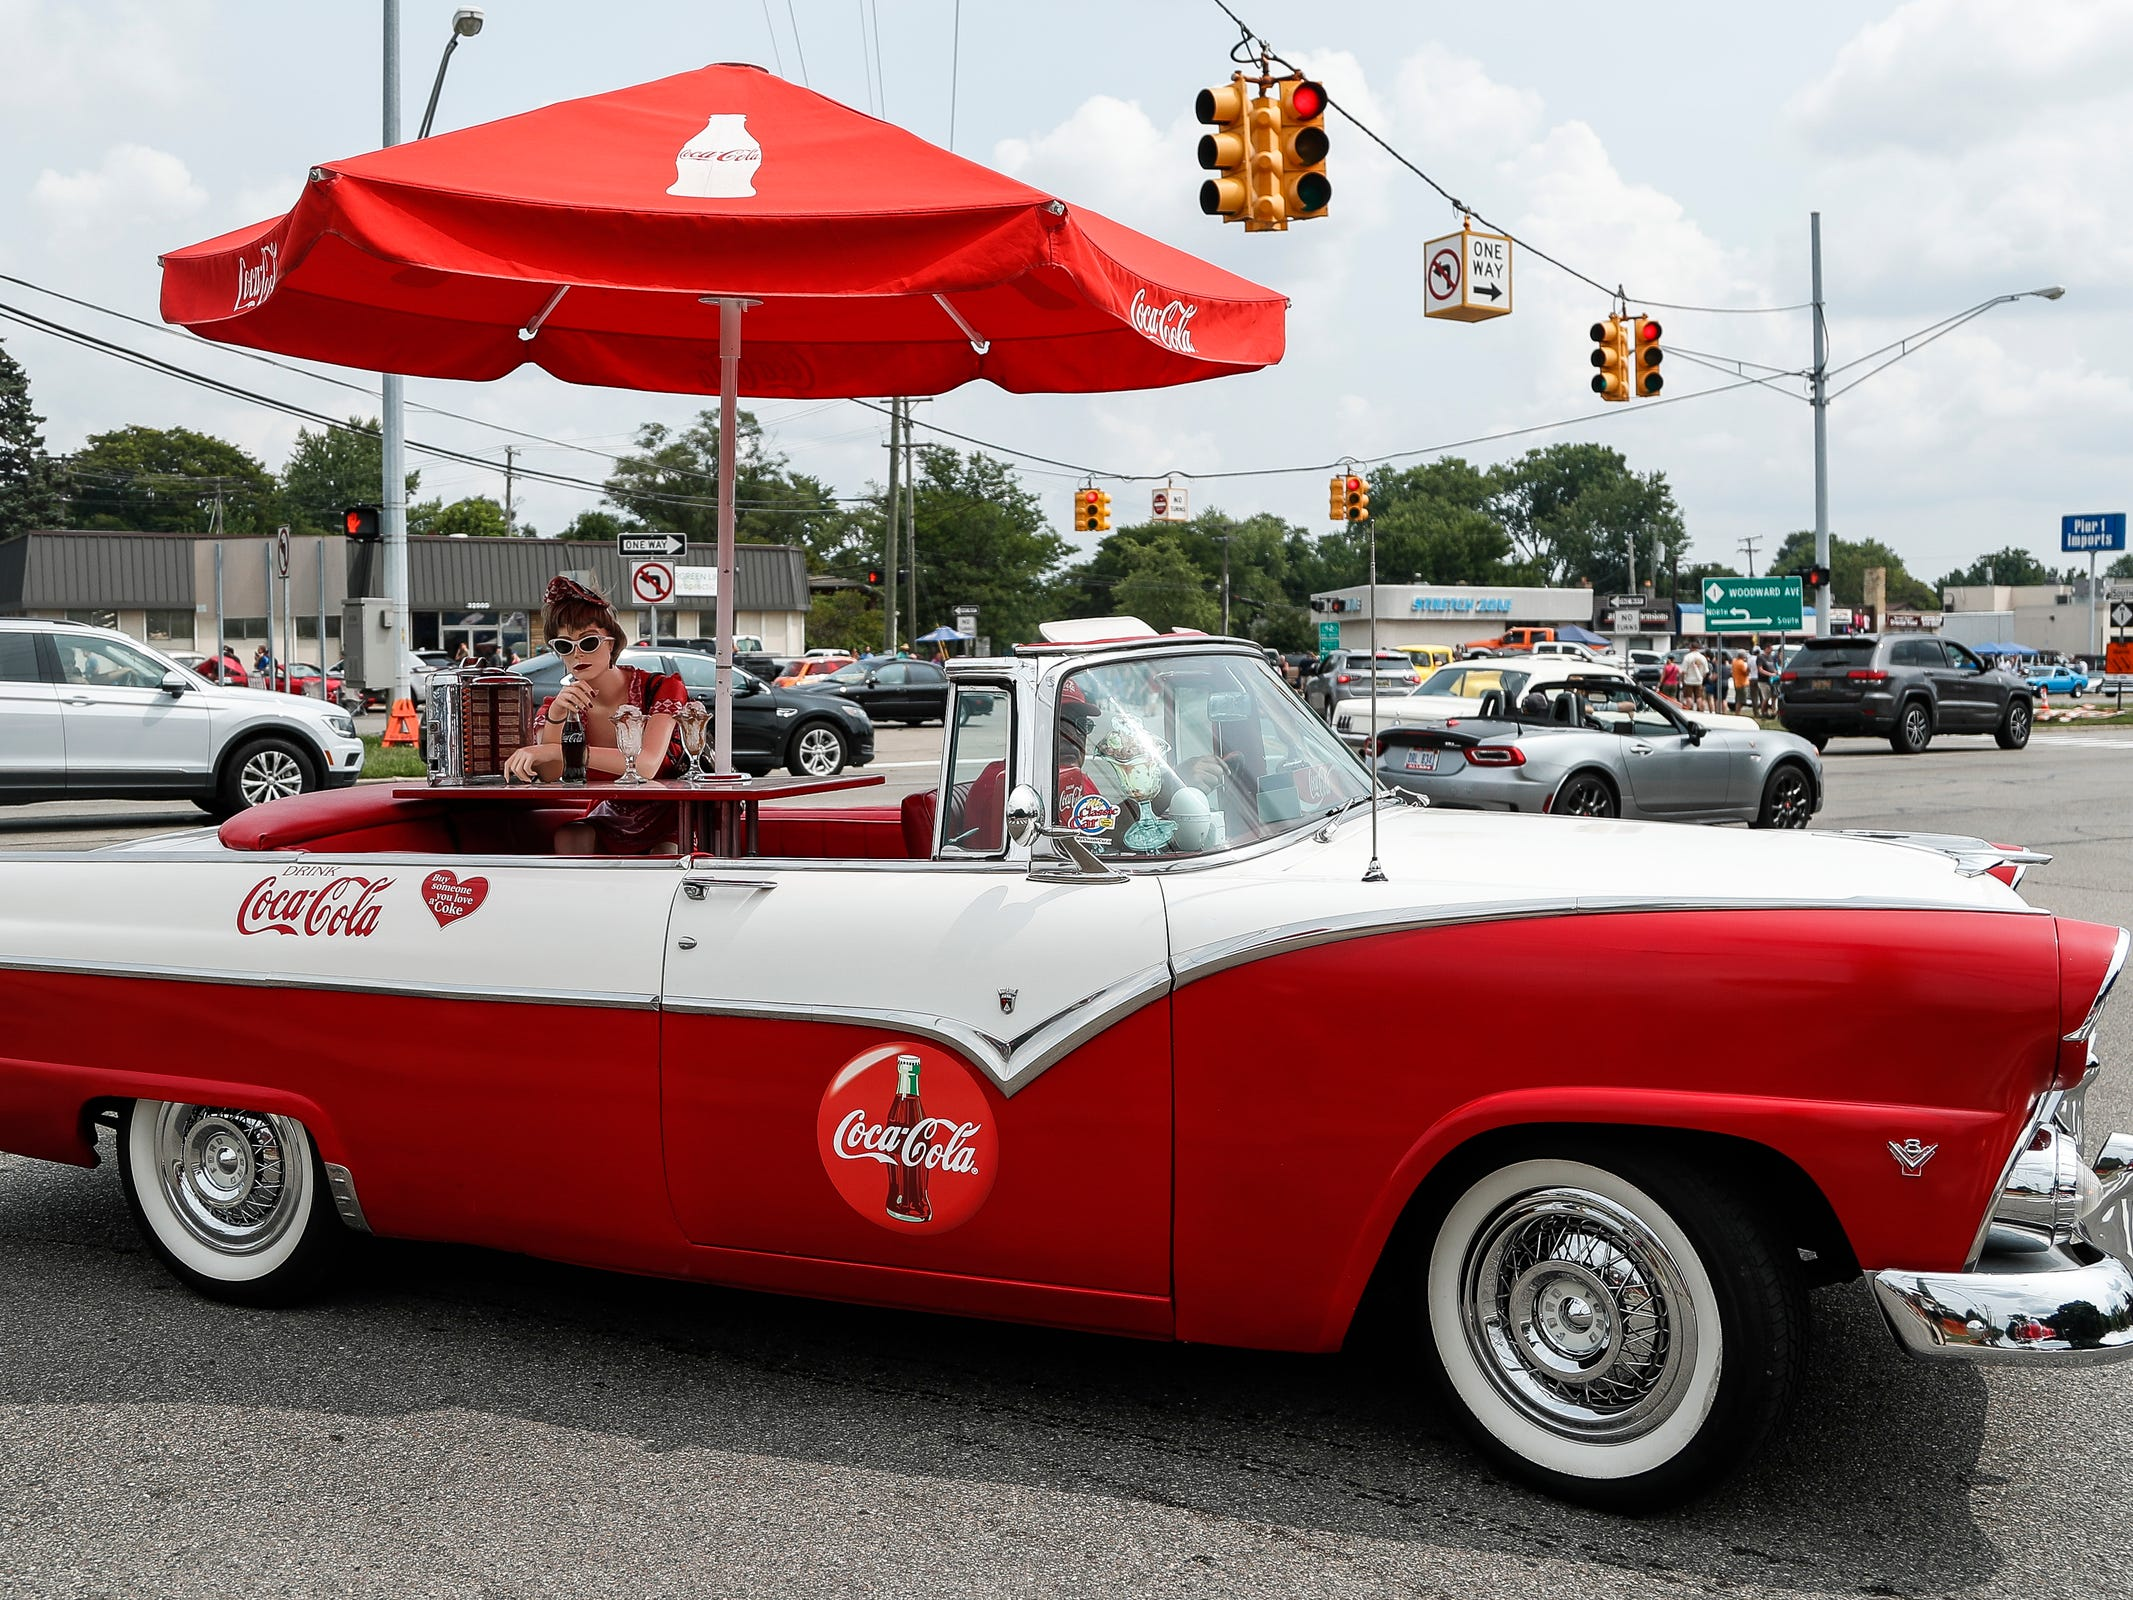 Bob Haas of South Lyon cruises in his Coca-Cola themed 1955 Ford along Woodward Avenue in Royal Oak during Woodward Dream Cruise, Saturday, August 18, 2018.